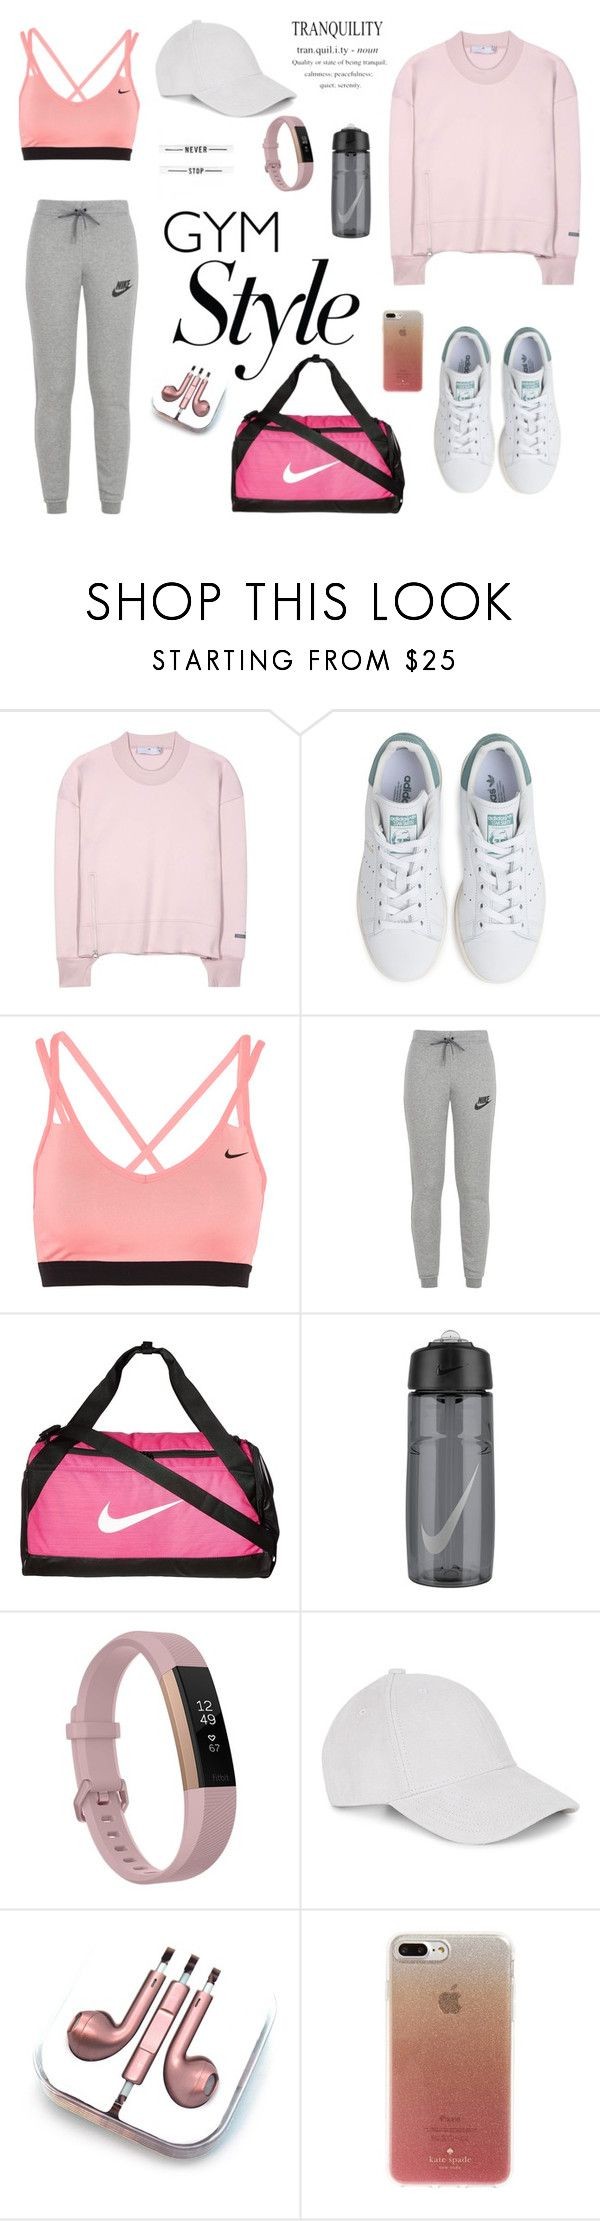 """untitled 520"" by deboraaguirregoncalves on Polyvore featuring moda, adidas, NIKE, Fitbit, PhunkeeTree e Kate Spade"